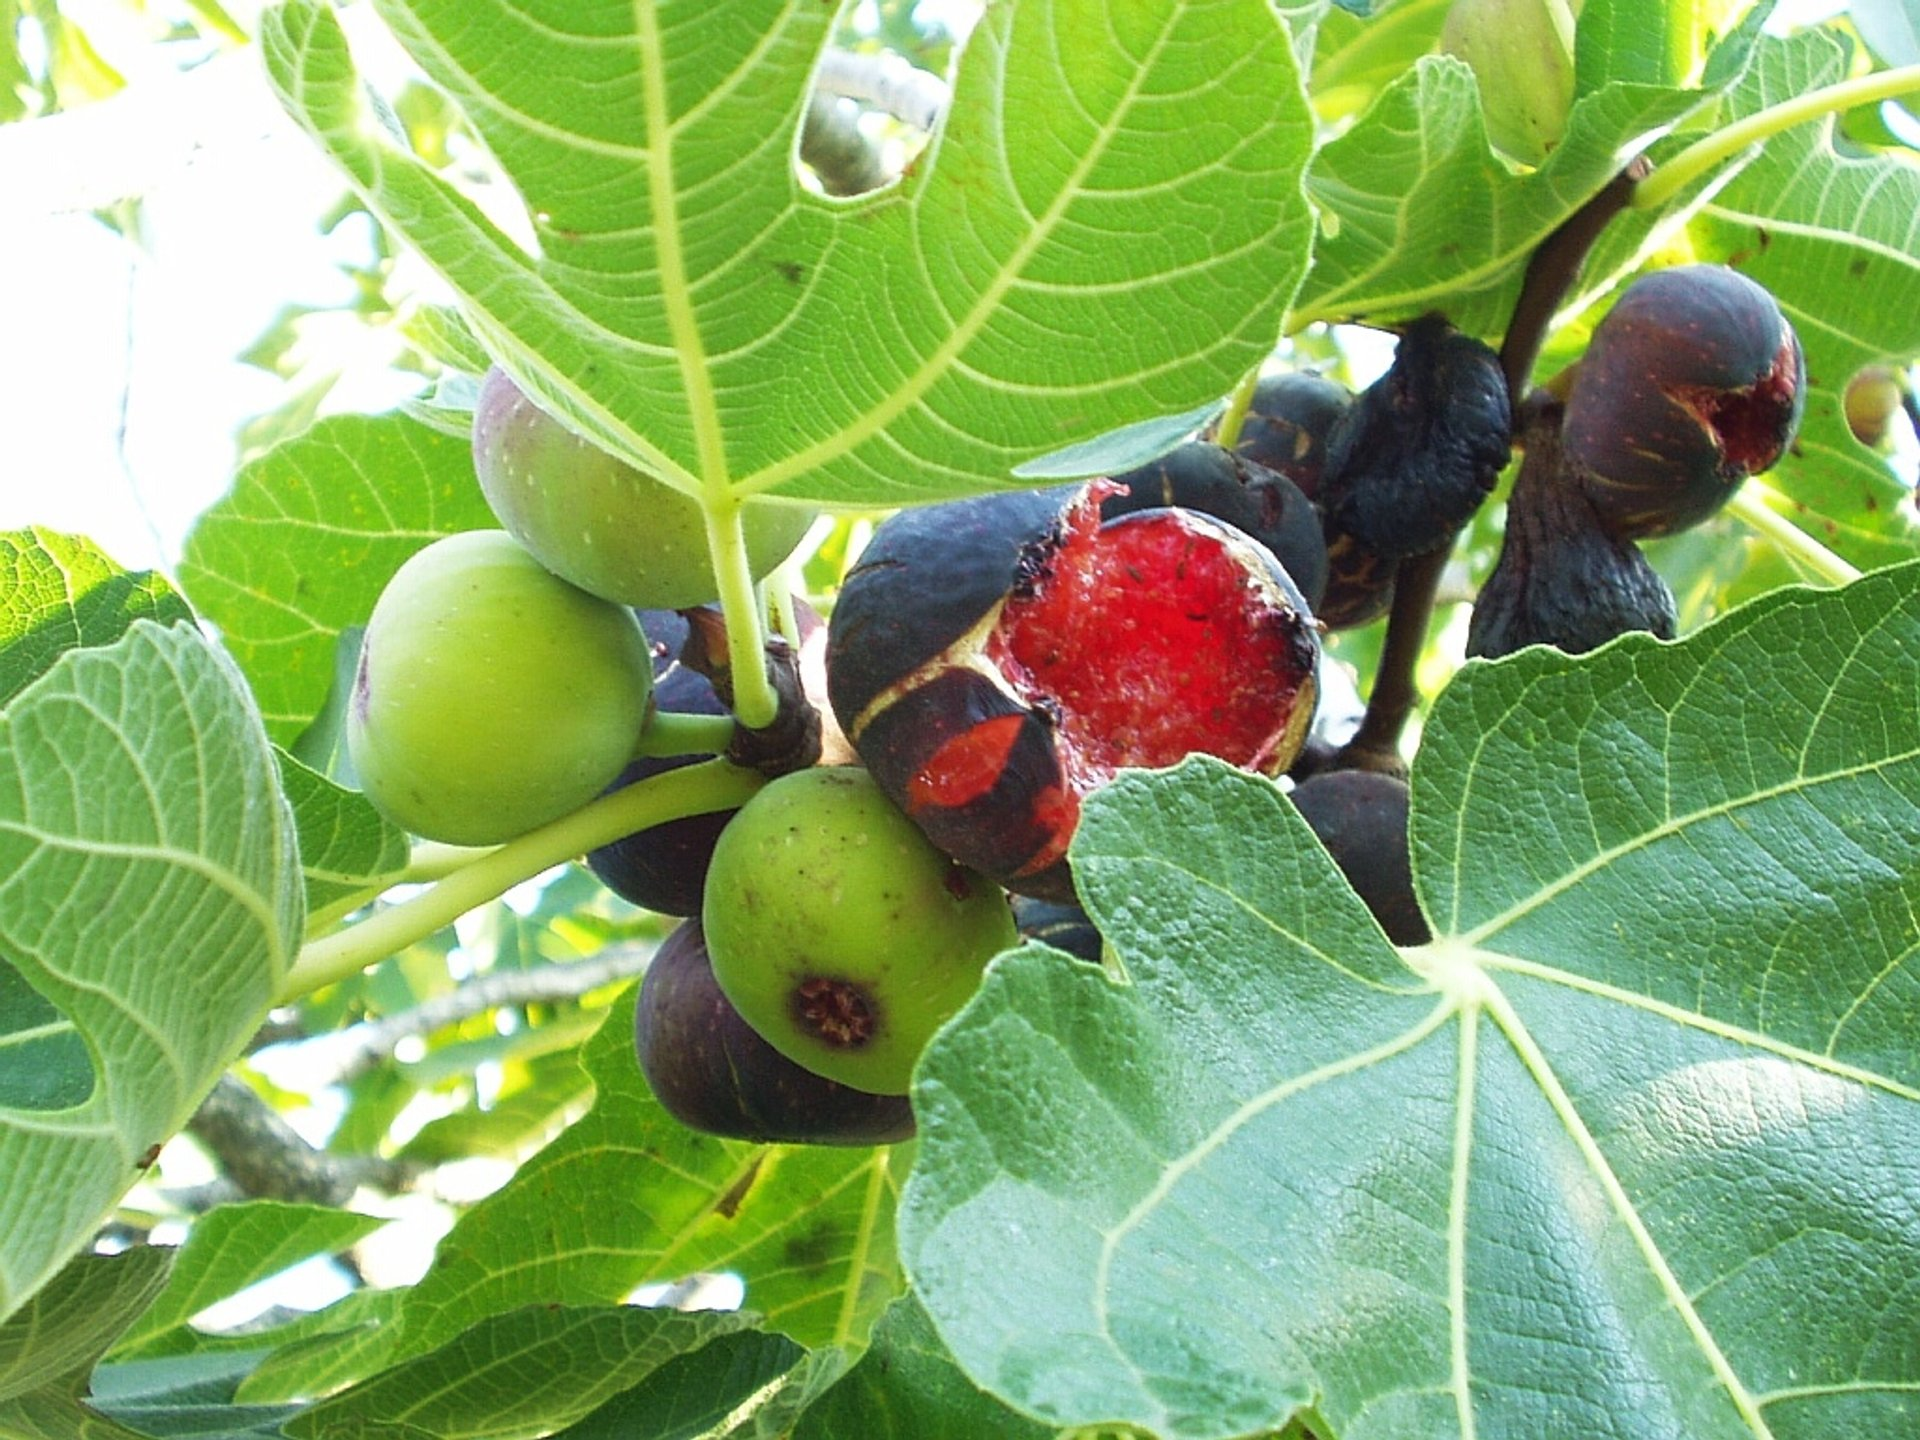 Wild Figs in Croatia 2020 - Best Time